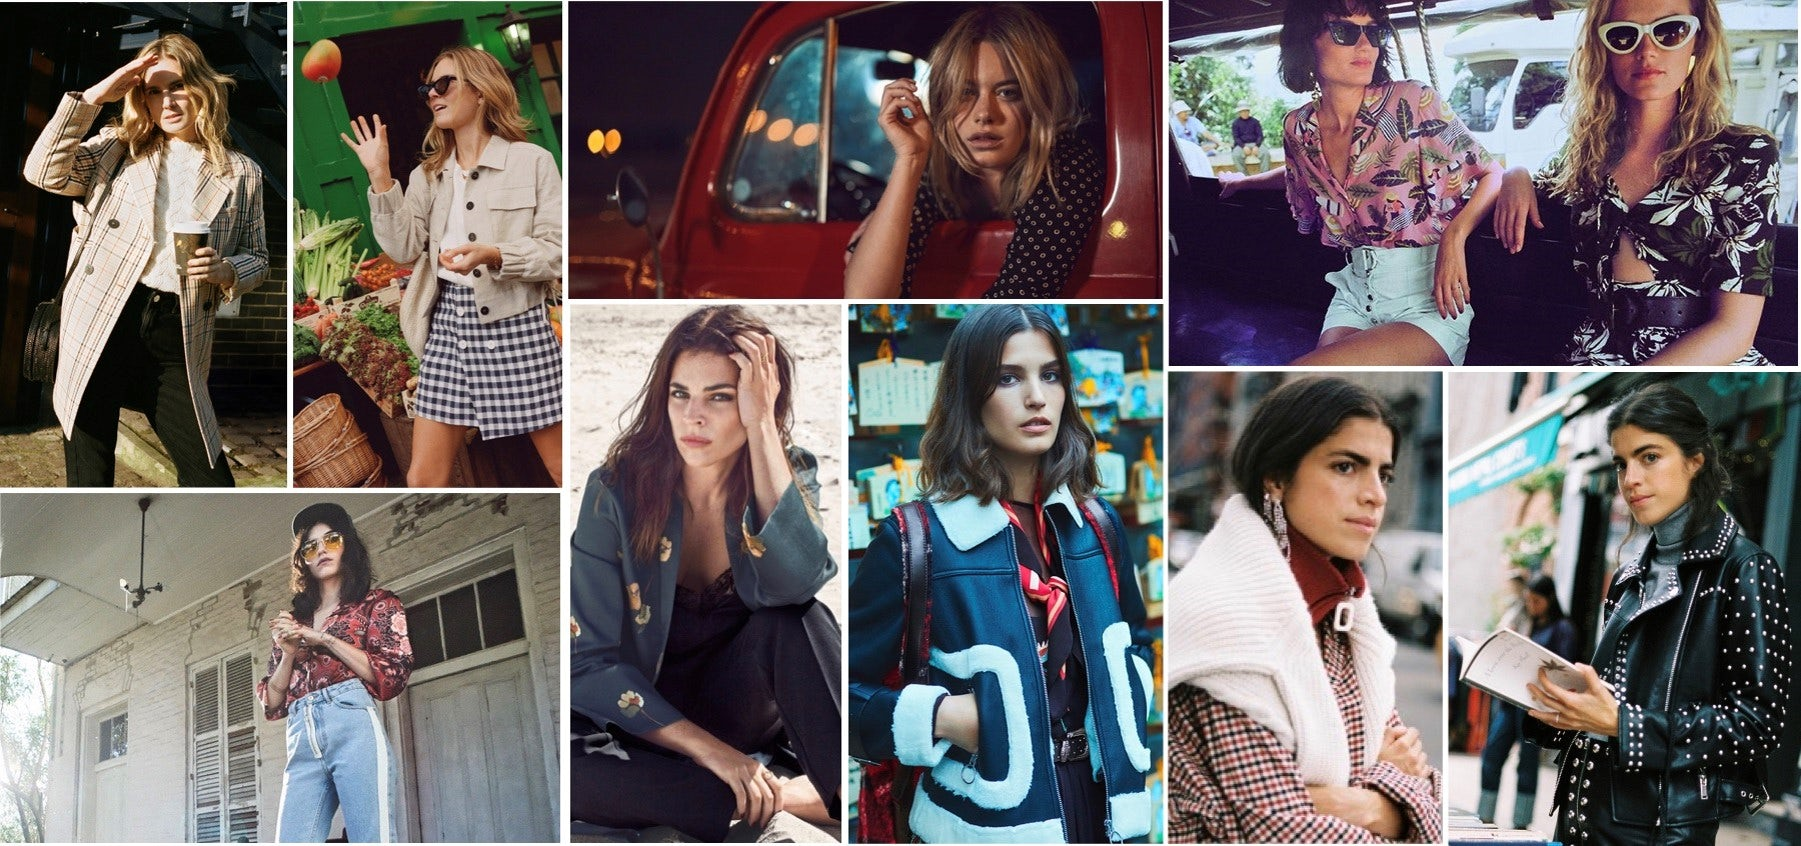 Images from the #MangoGirls campaign | Source: Courtesy